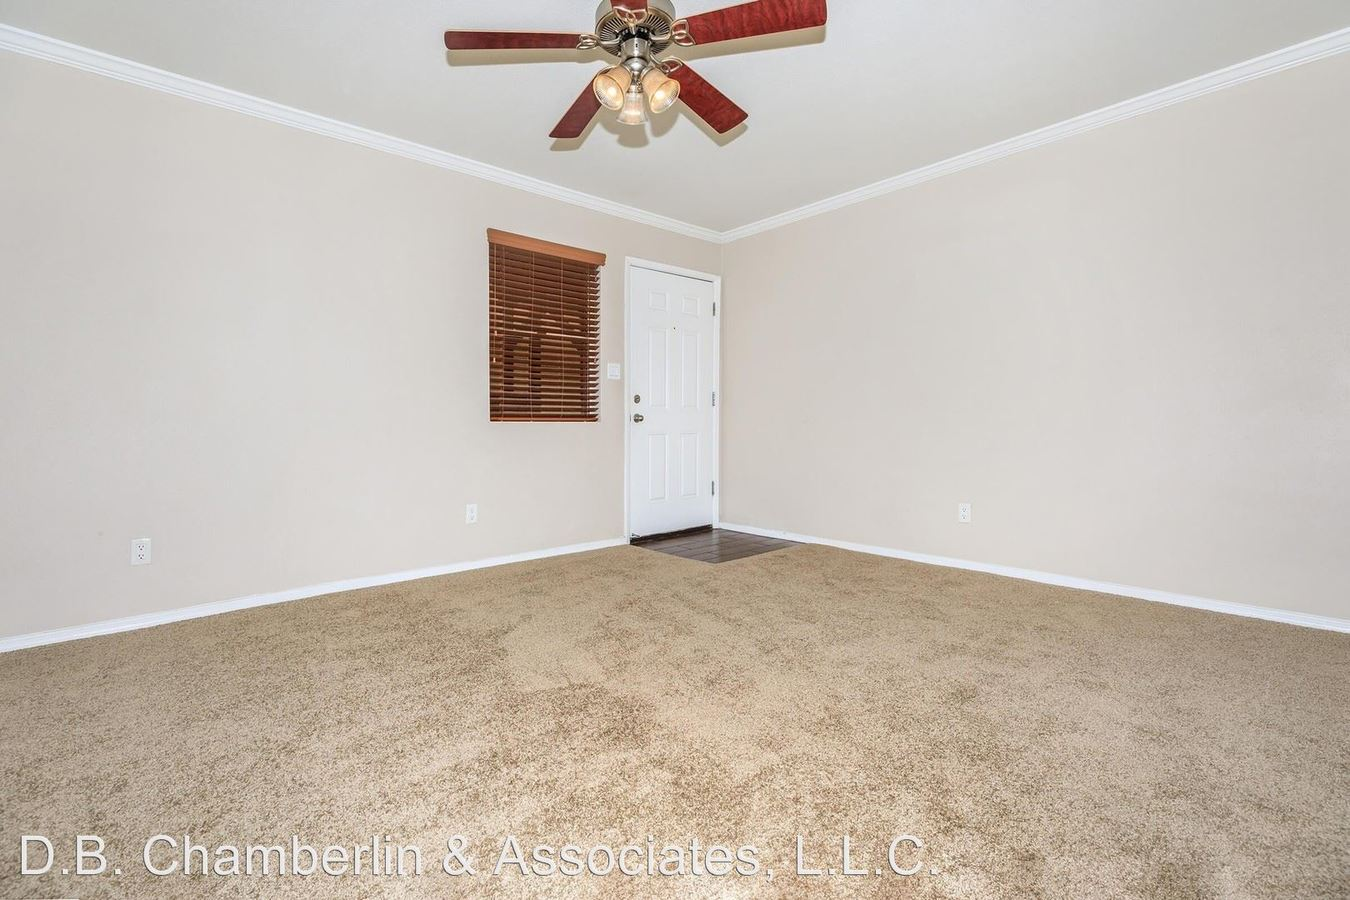 1 Bedroom 1 Bathroom Apartment for rent at 17625 N 7th St in Phoenix, AZ